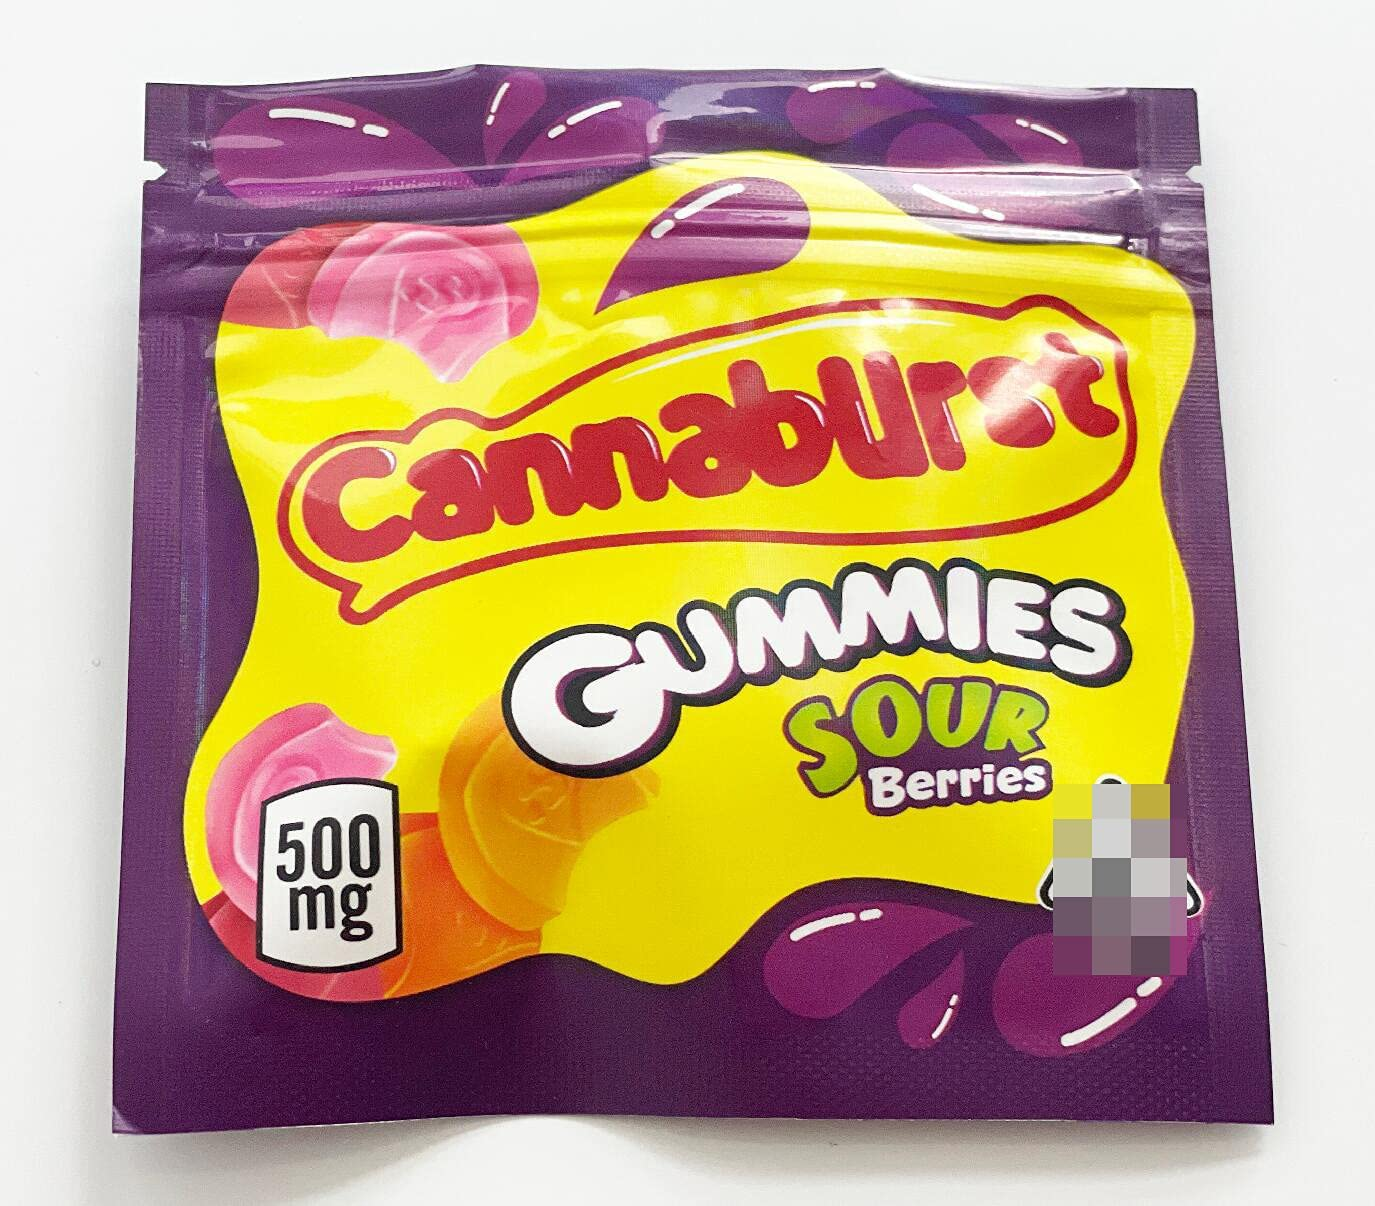 105 PCS Gummies Sour Berries Limited time for free shipping Cannaburst Edibl Popular standard 4×4 500mg In Candy